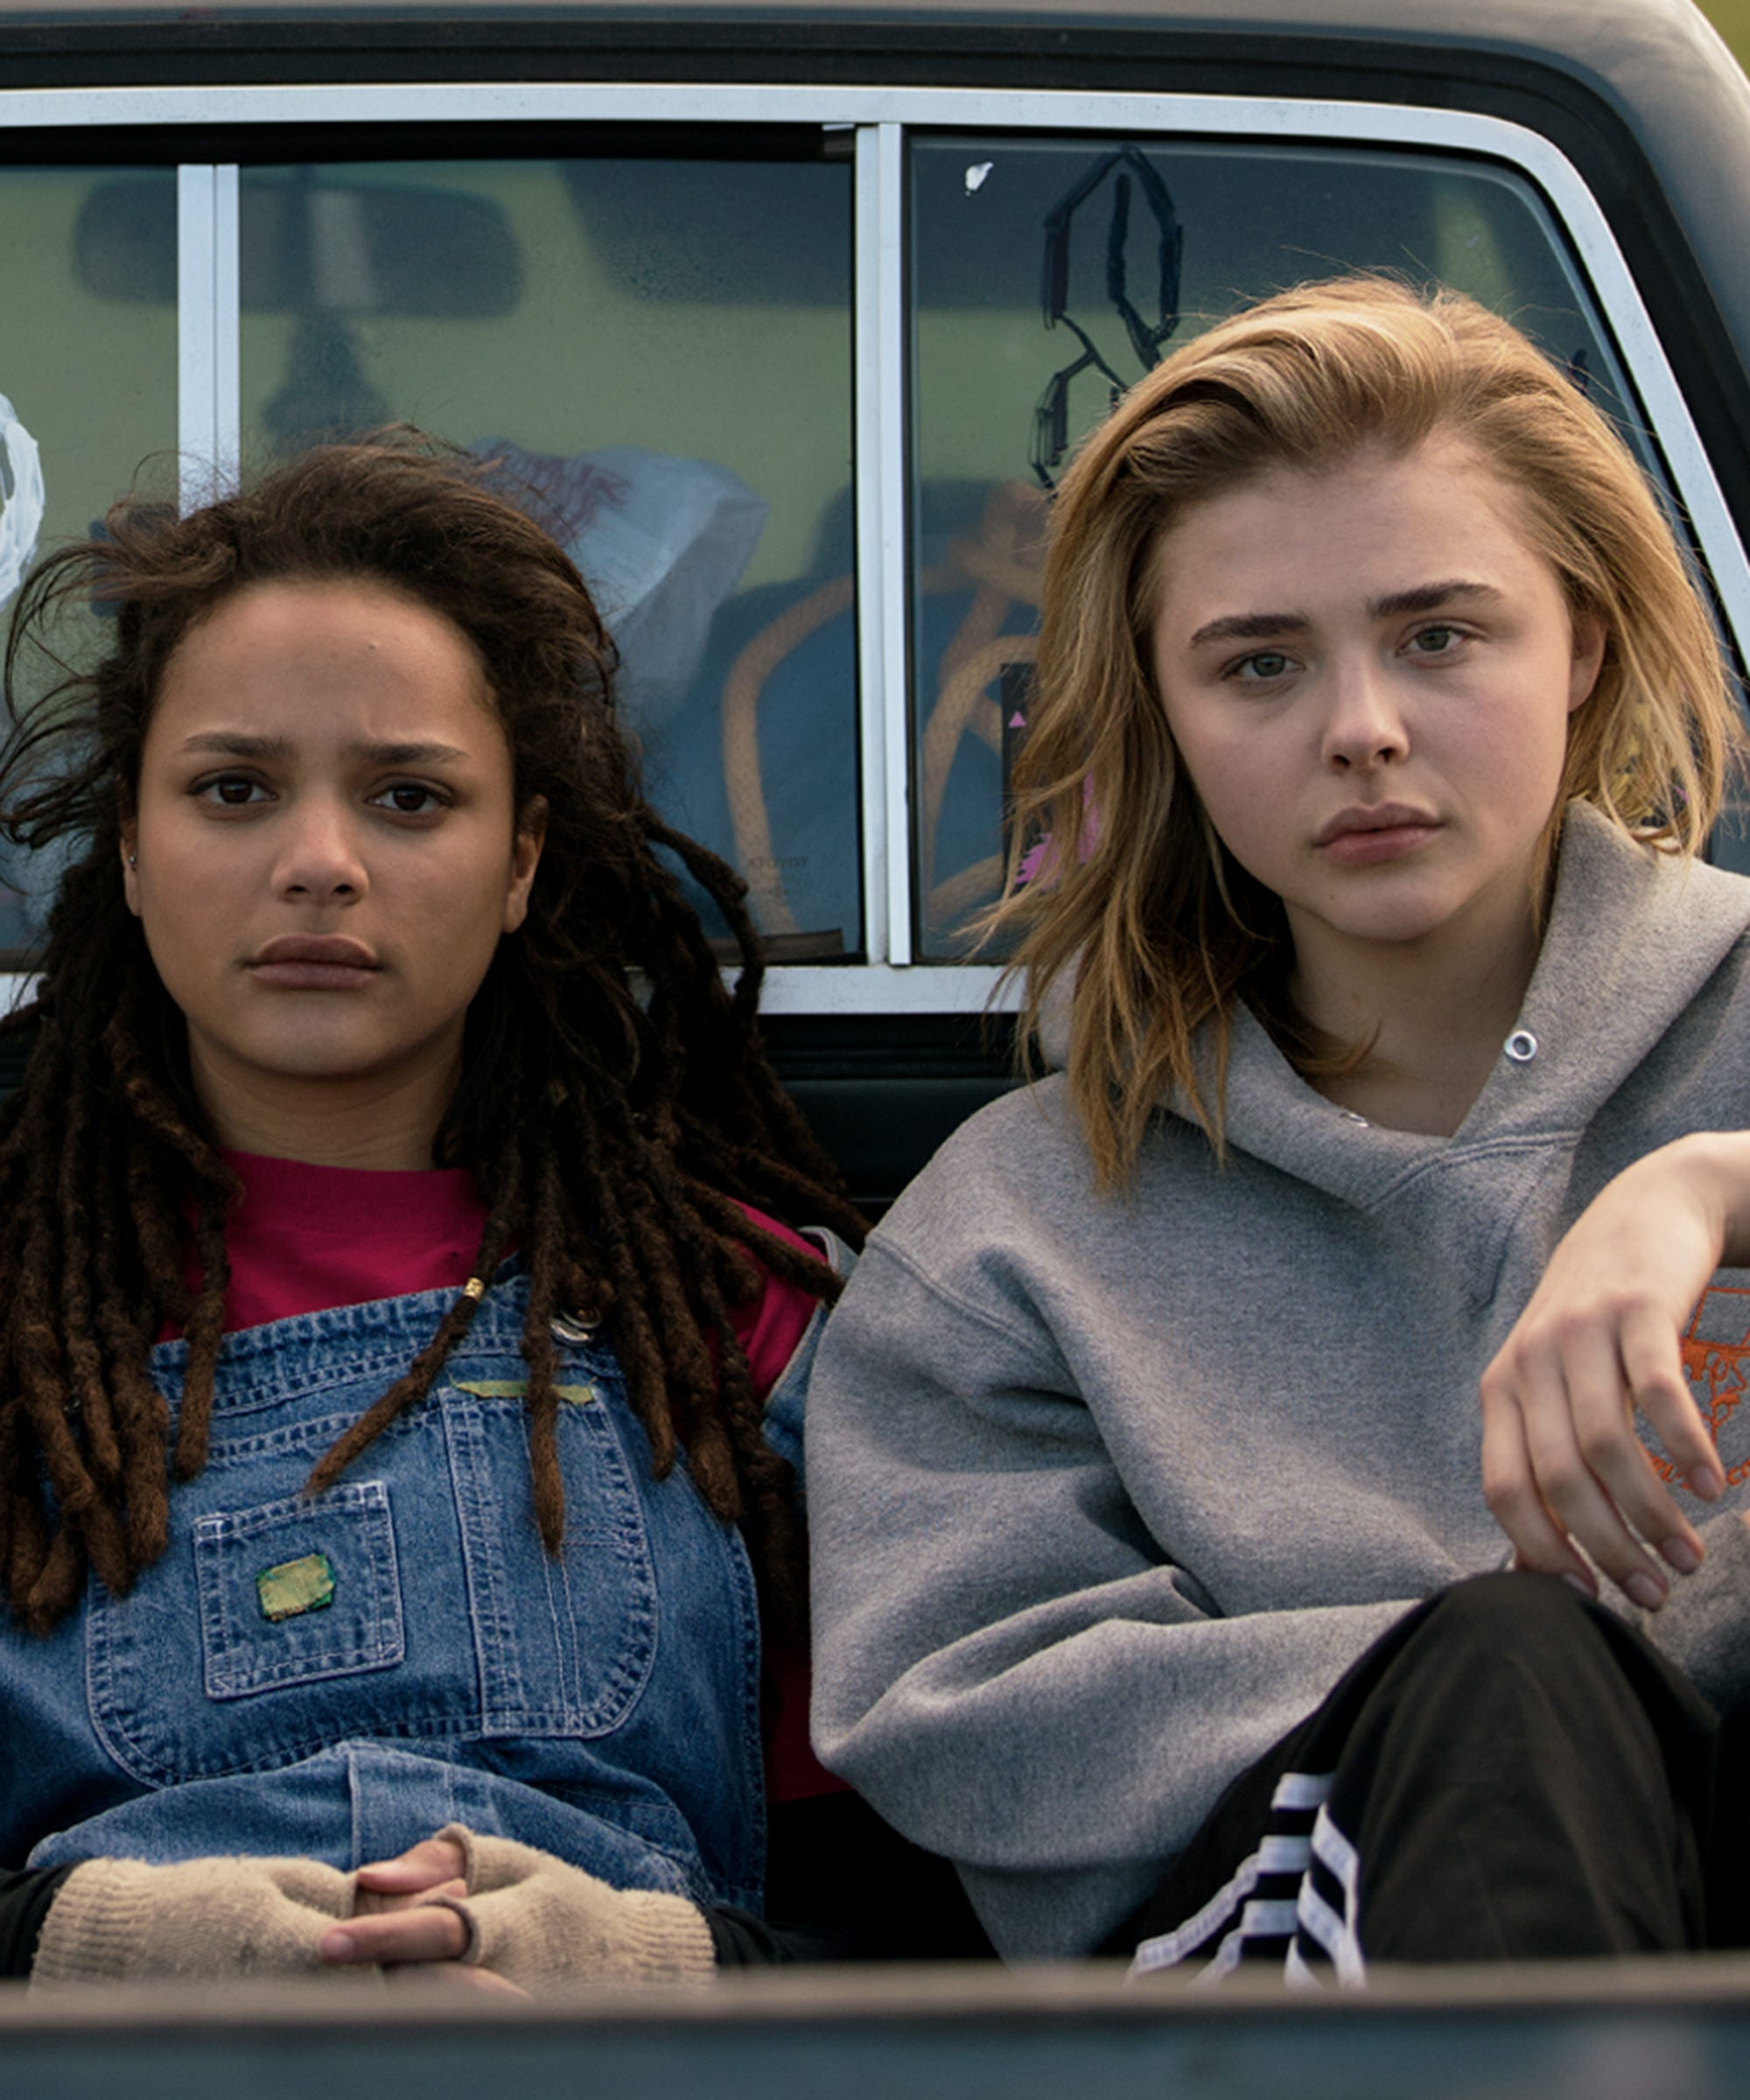 The Miseducation Of Cameron Post Exposes The Underbelly Of Gay Conversion Therapy